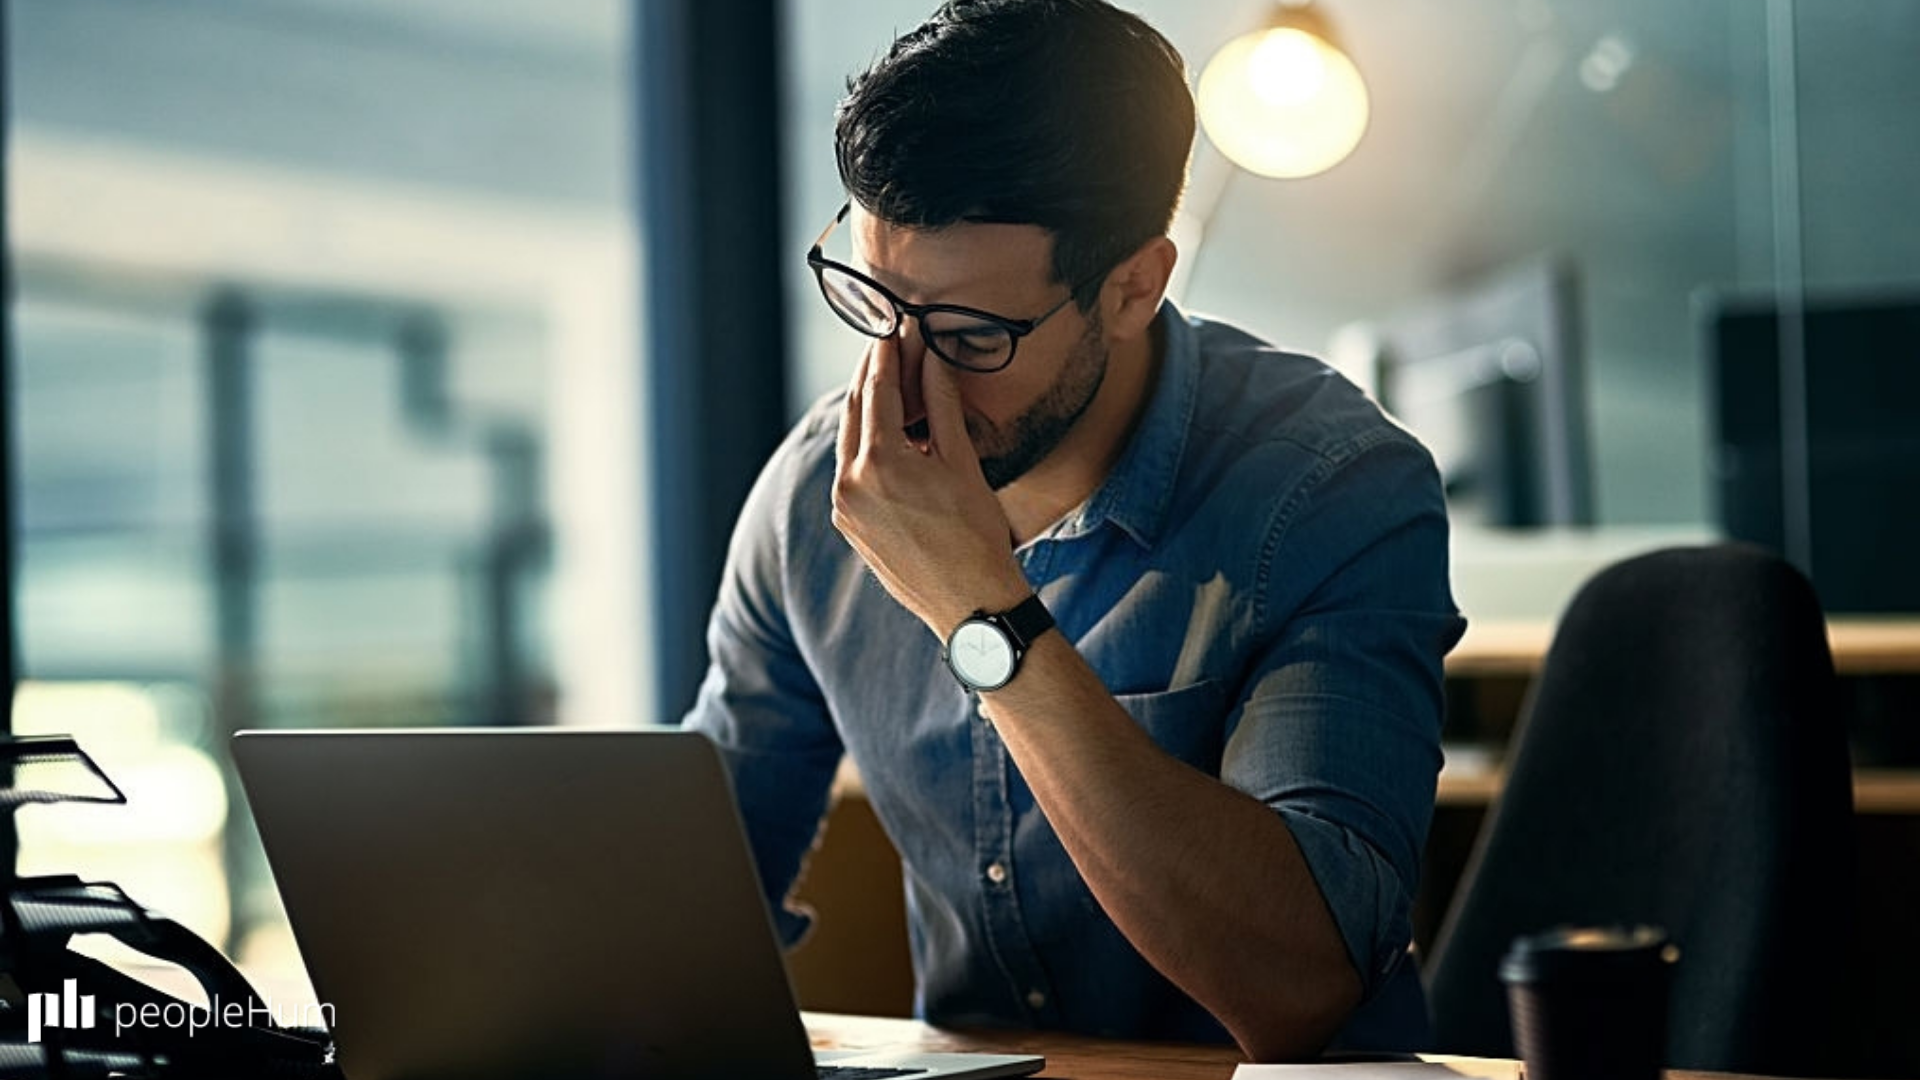 The 10 symptoms of a bad working atmosphere